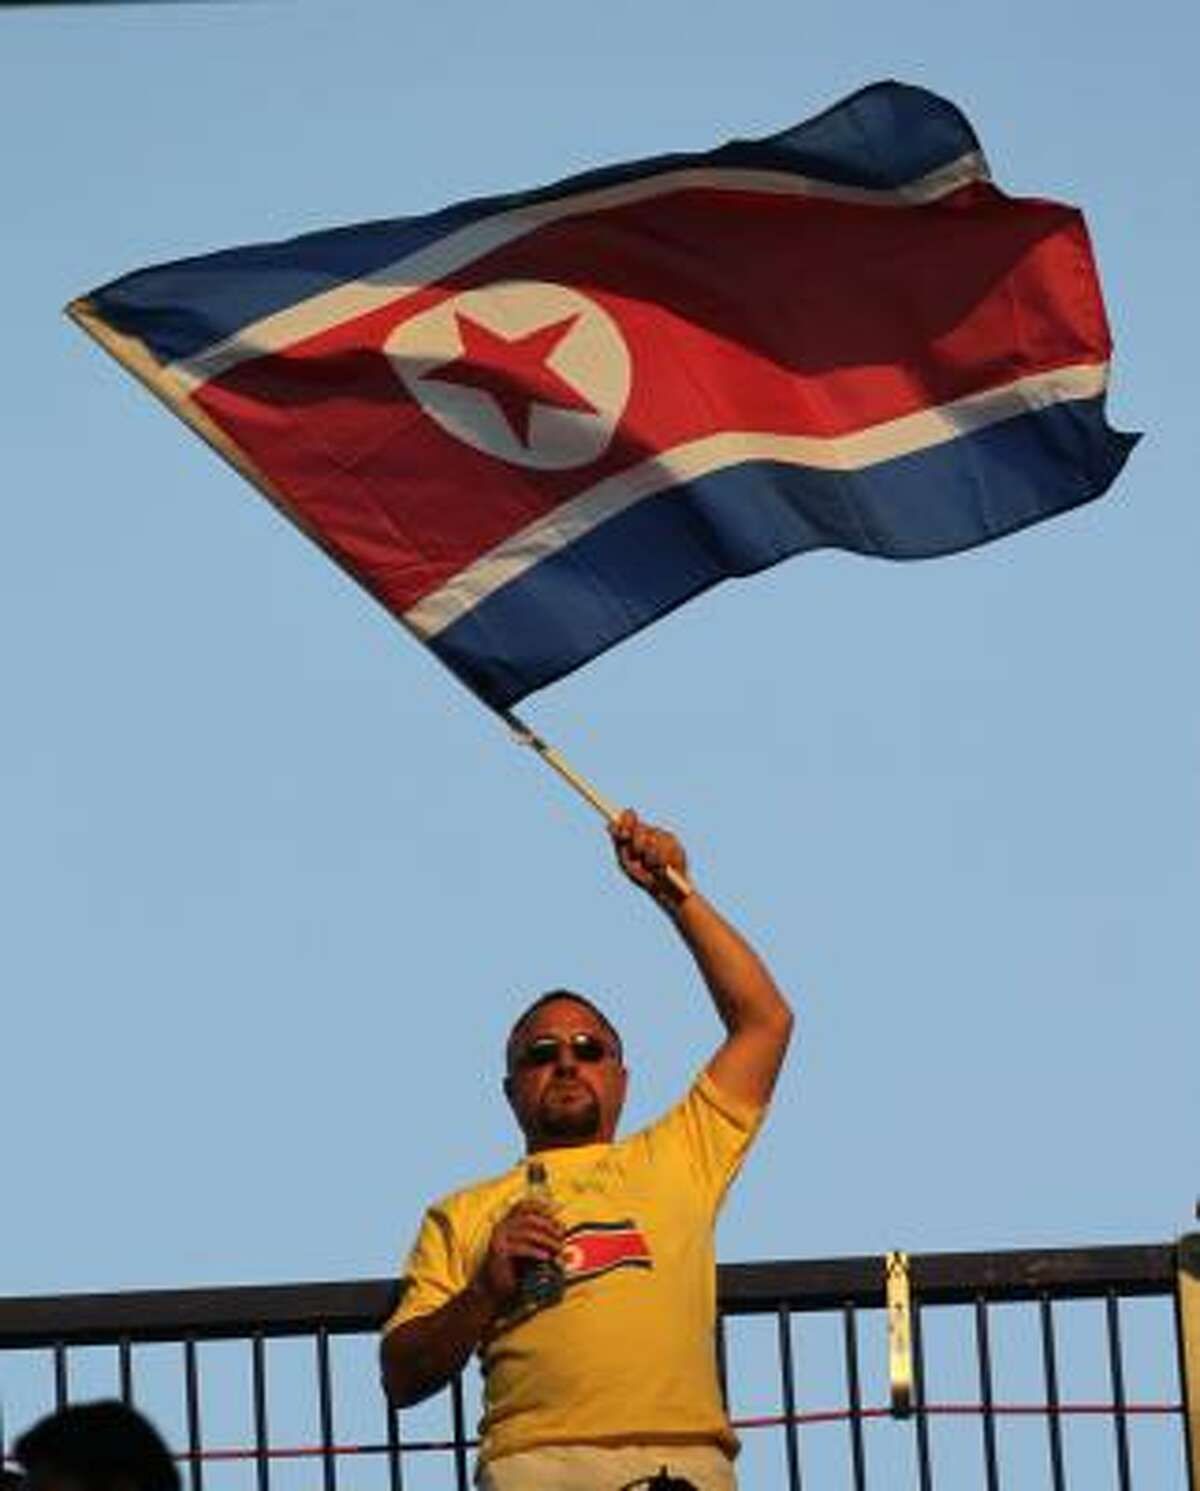 A man waves a North Korean flag during the World Cup group G soccer match between North Korea and Ivory Coast at Mbombela Stadium.